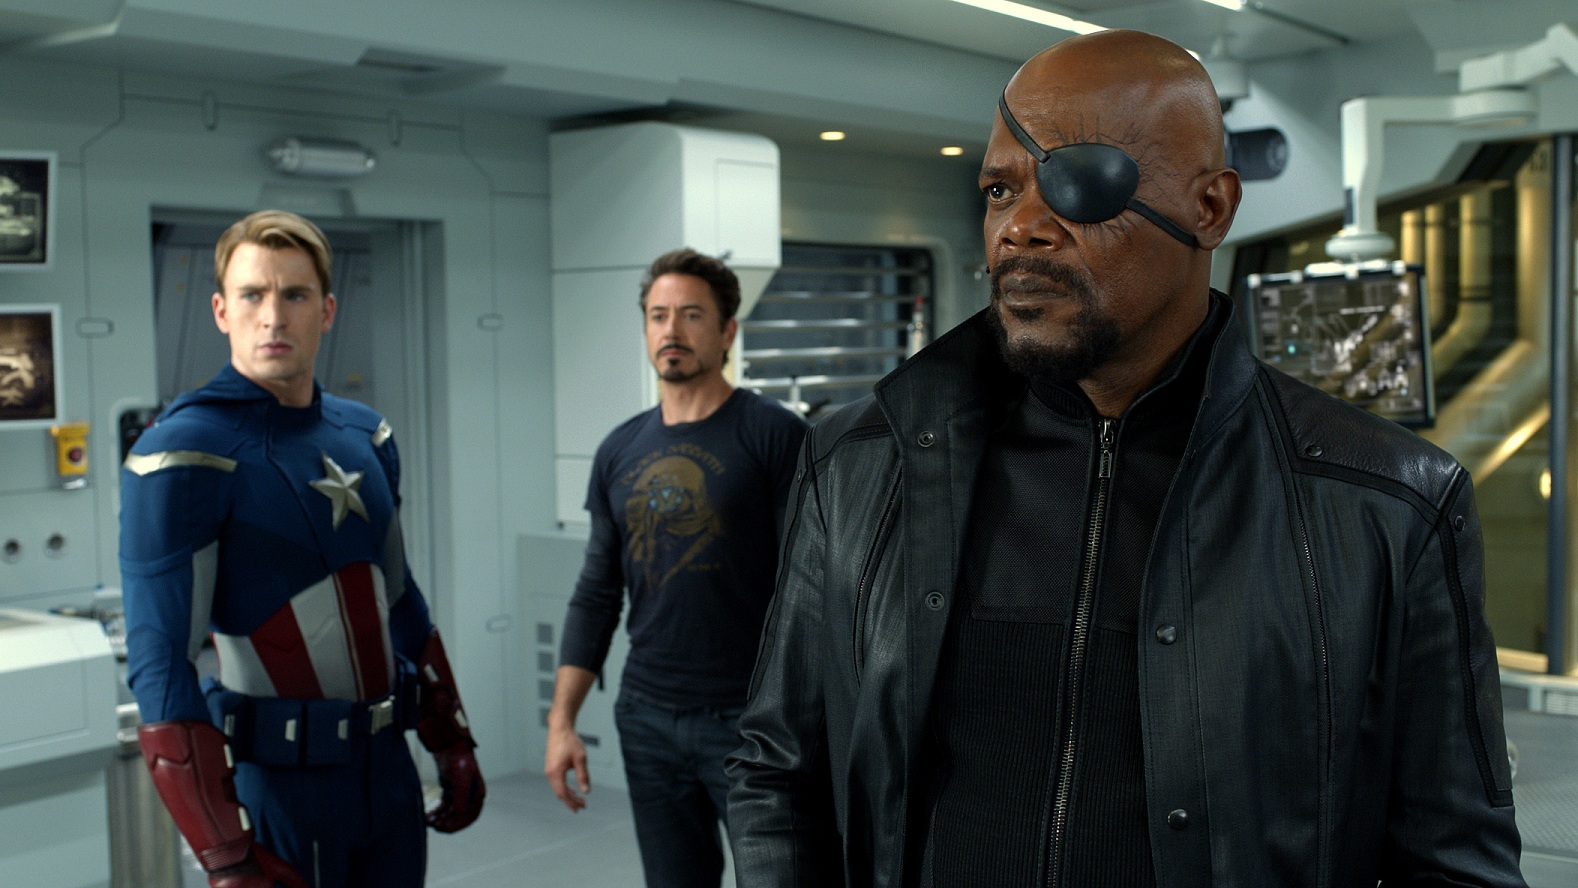 Avengers: Who will be the new characters in the Marvel hero group?